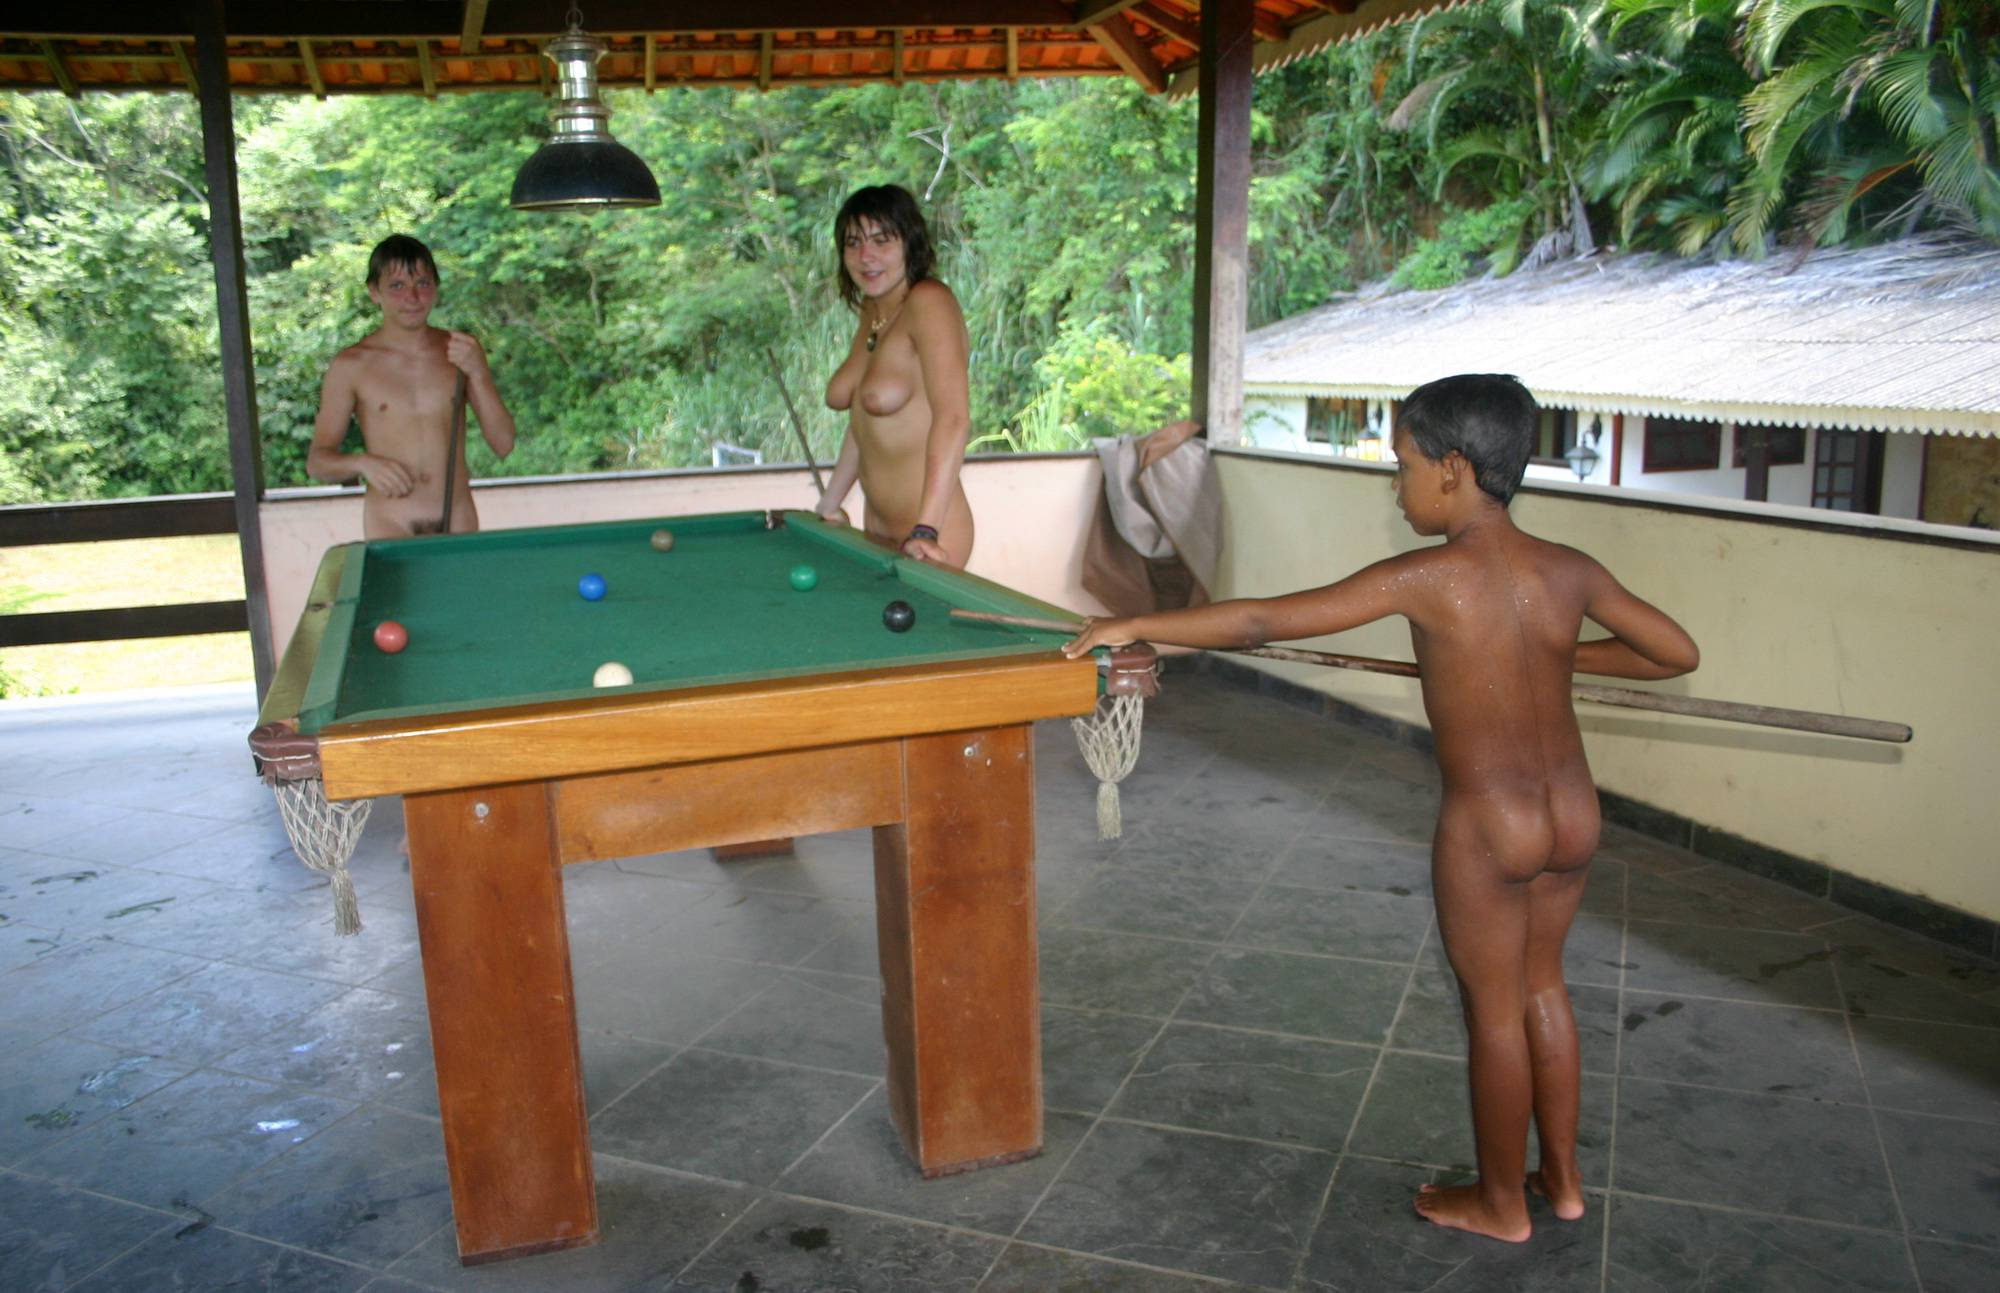 Nudist Pictures Brazilian Pool and Games - 1